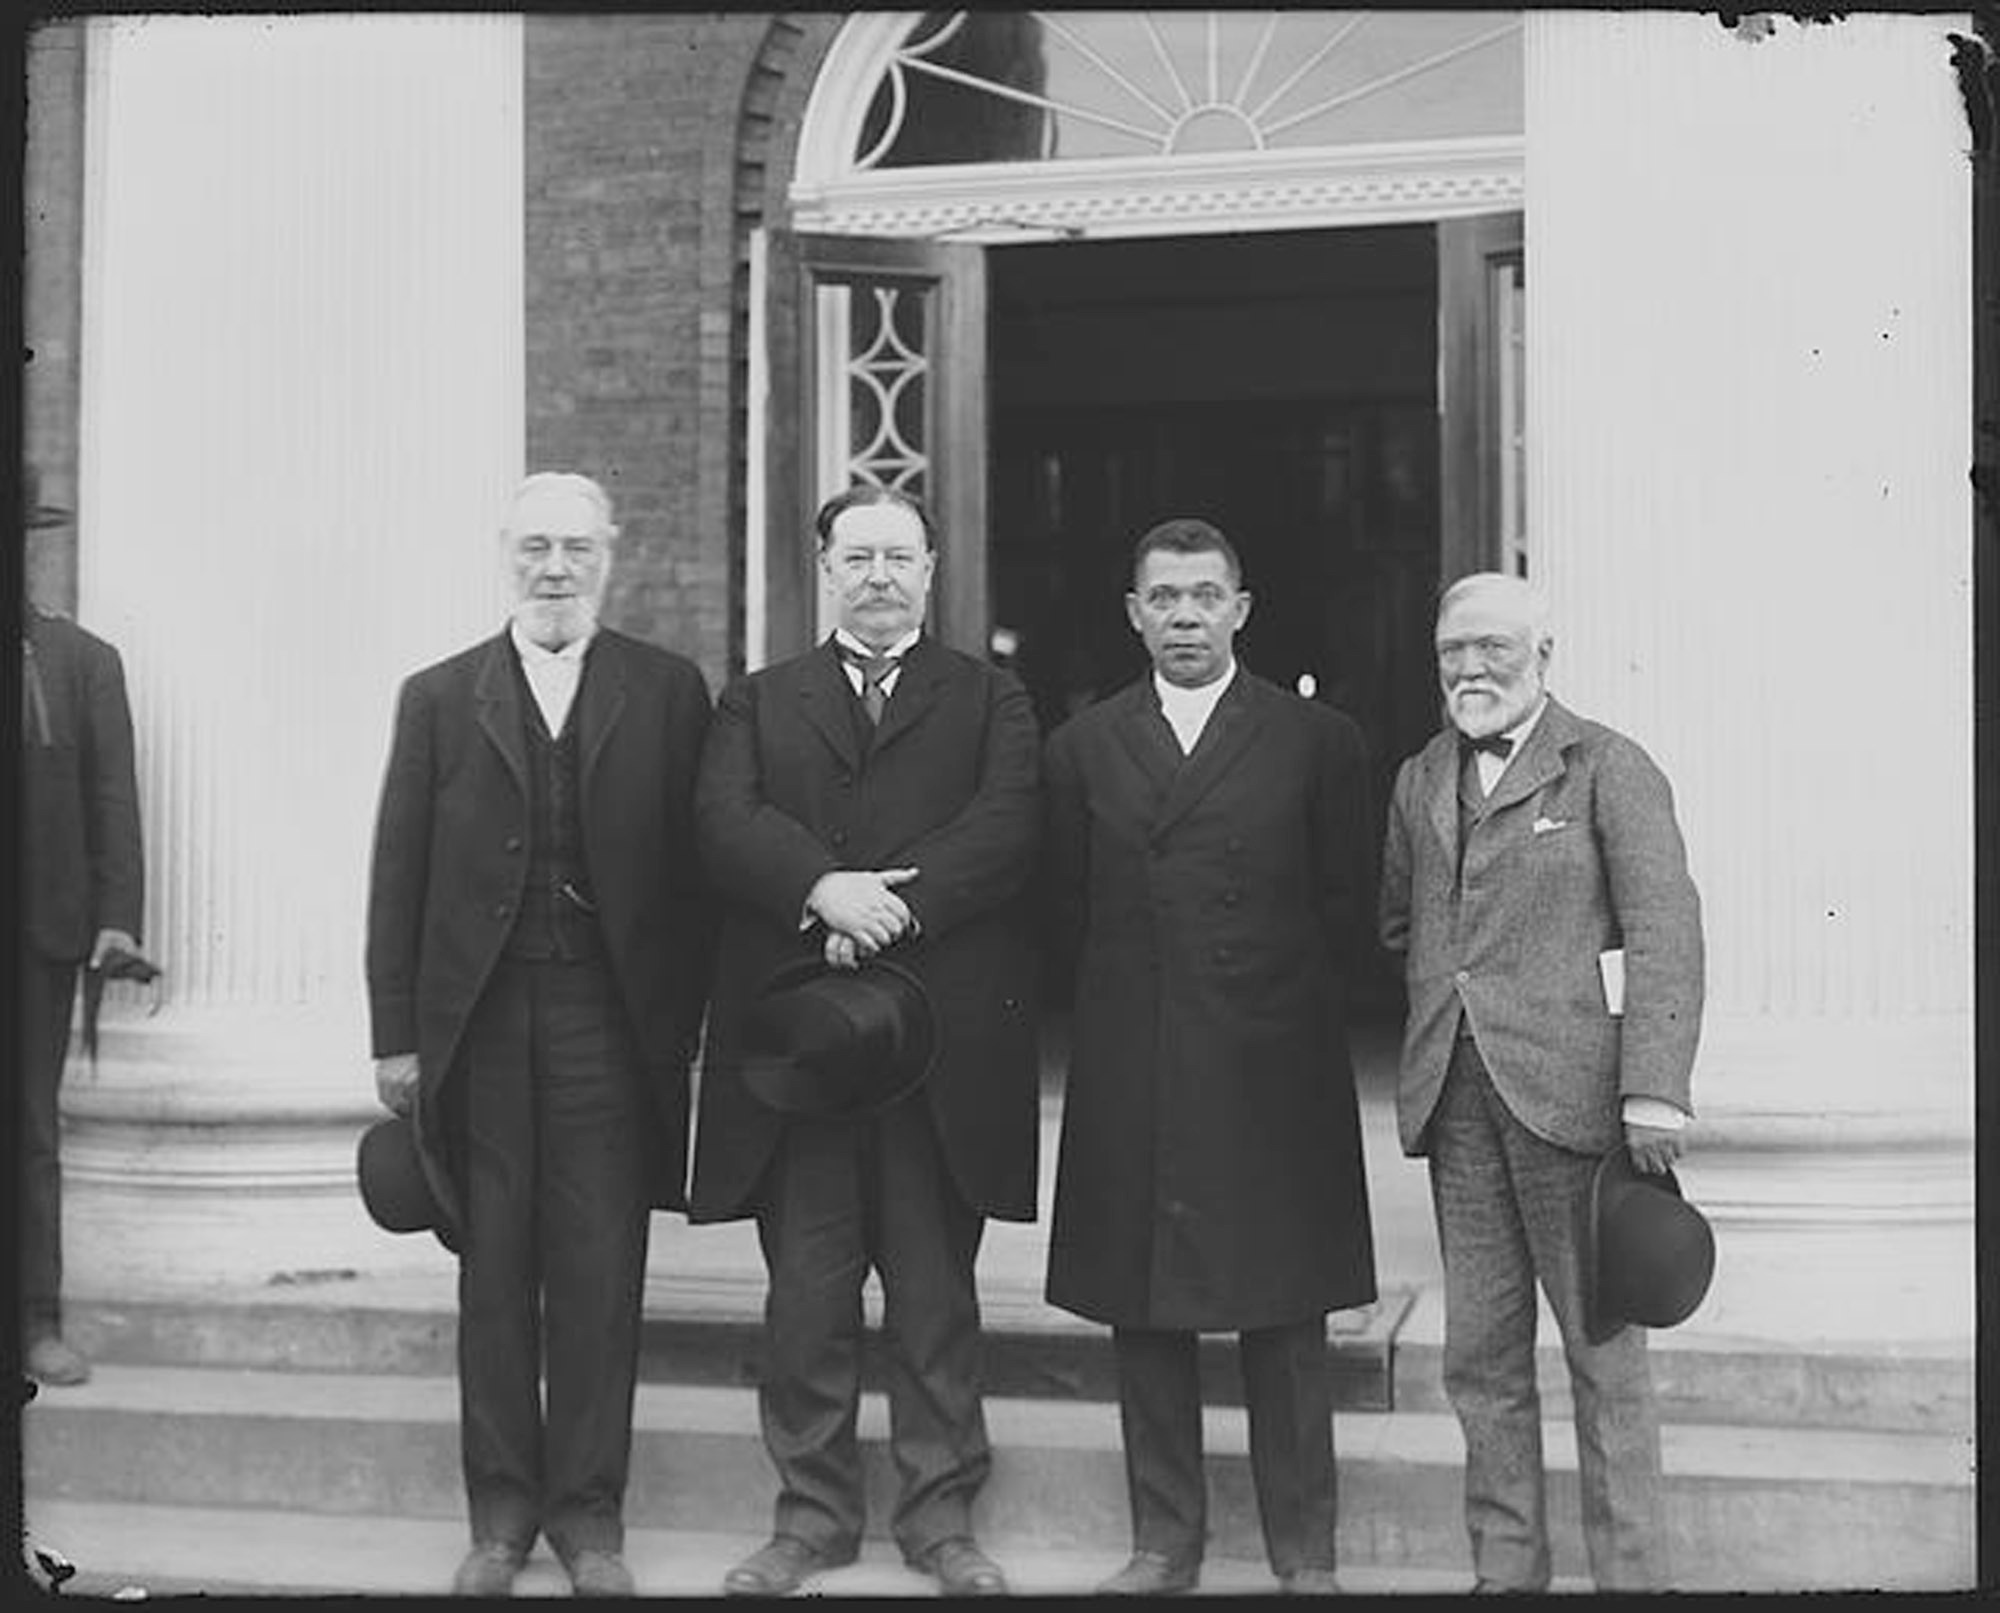 Frances Benjamin Johnston / Library of Congress via APFrom left, Robert C. Ogden, William Howard Taft, Booker T. Washington and Andrew Carnegie stand on the steps of a building in April 1906 during the 25th anniversary celebration of what is now Tuskegee University in Tuskegee, Alabama. Taft would later become president.